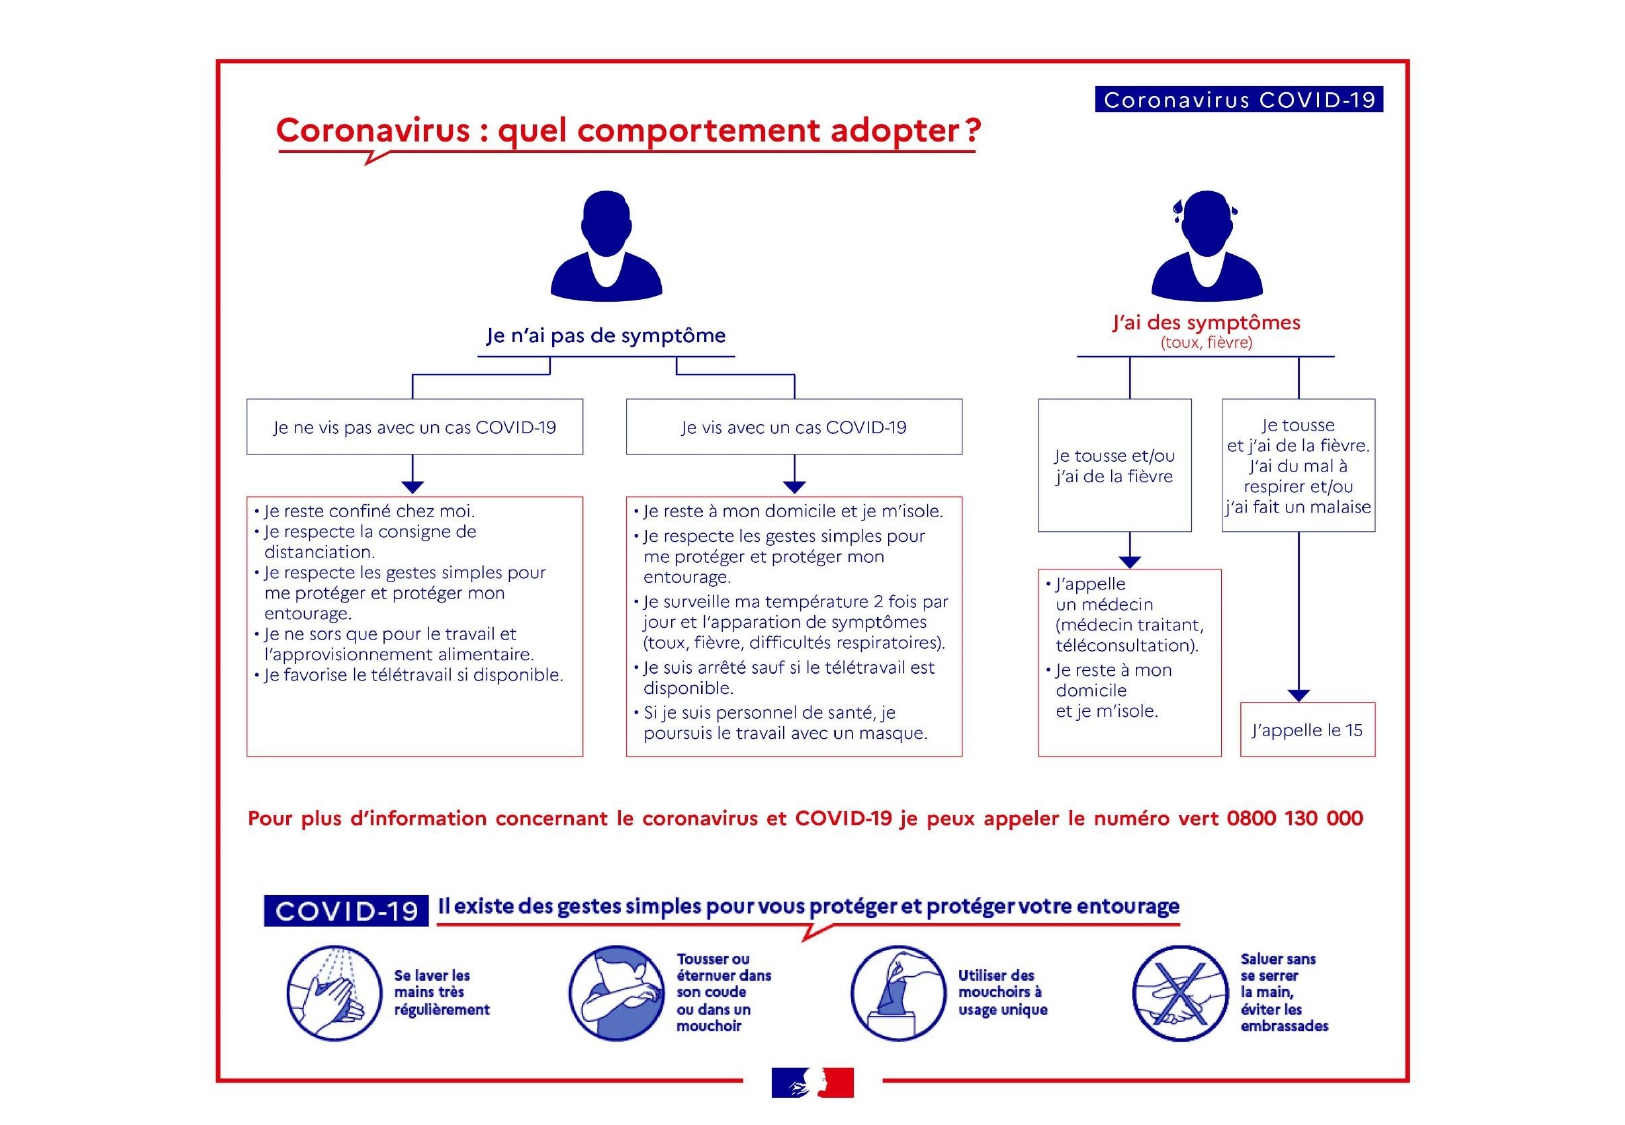 affiche_quel_comportement_adopter_page-0001.jpg